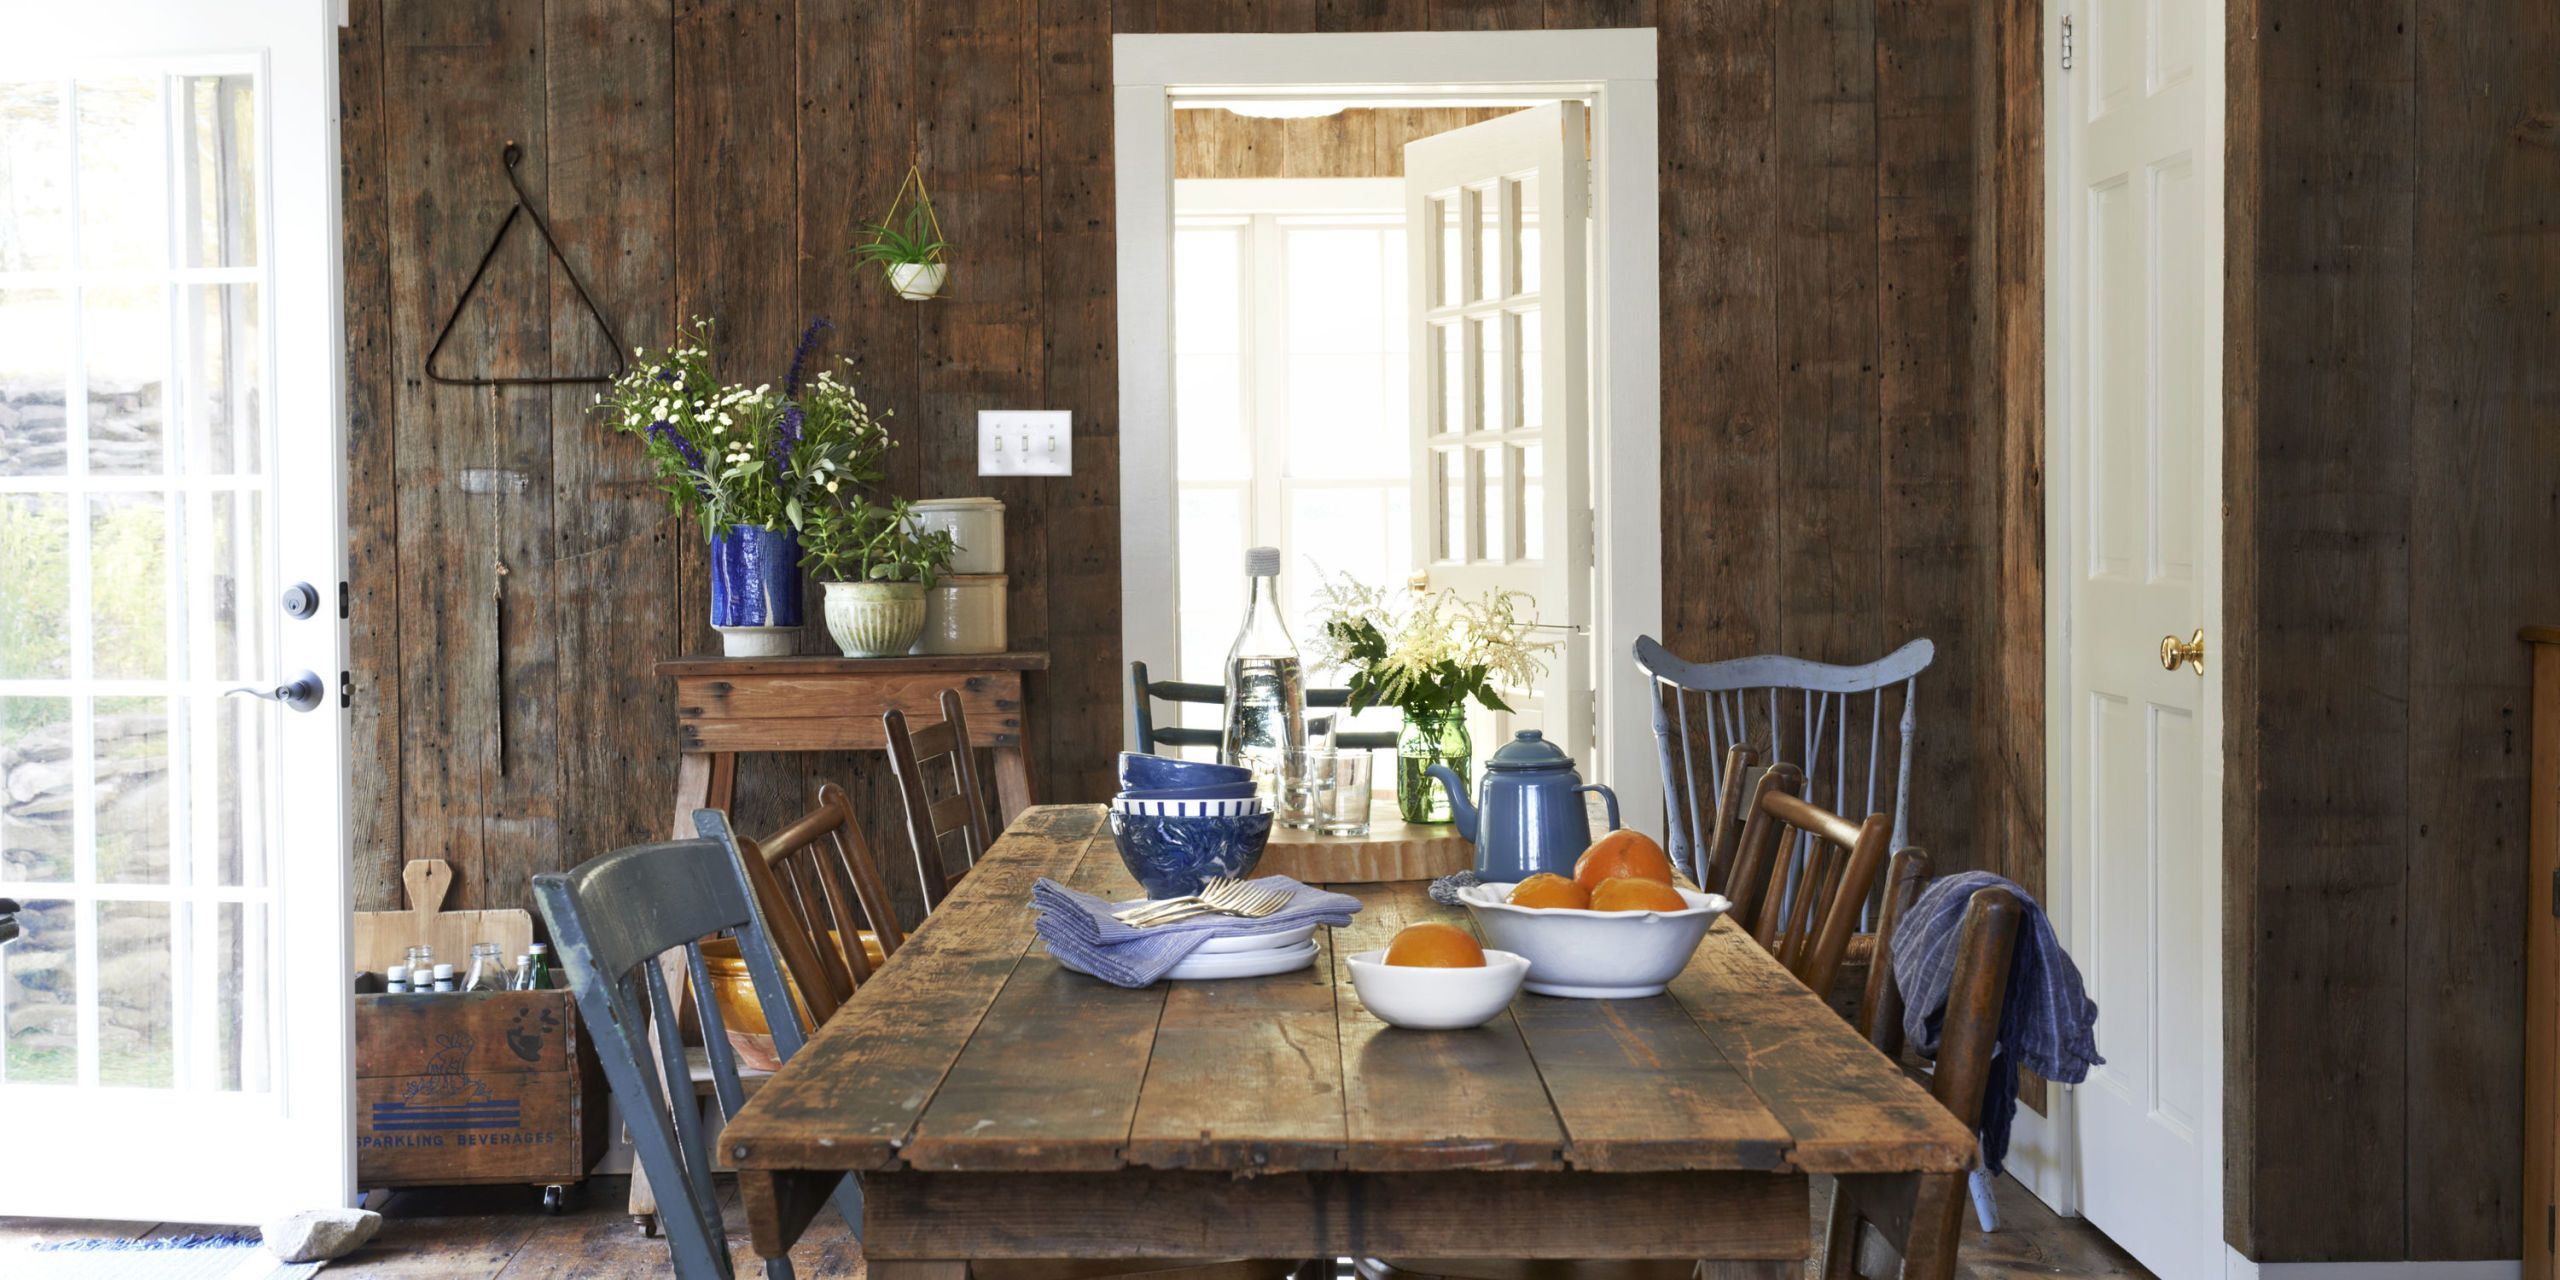 Make Over Your Dining Room With These Easy Tips, Clever Ideas, And Fabulous  Design Inspirations.